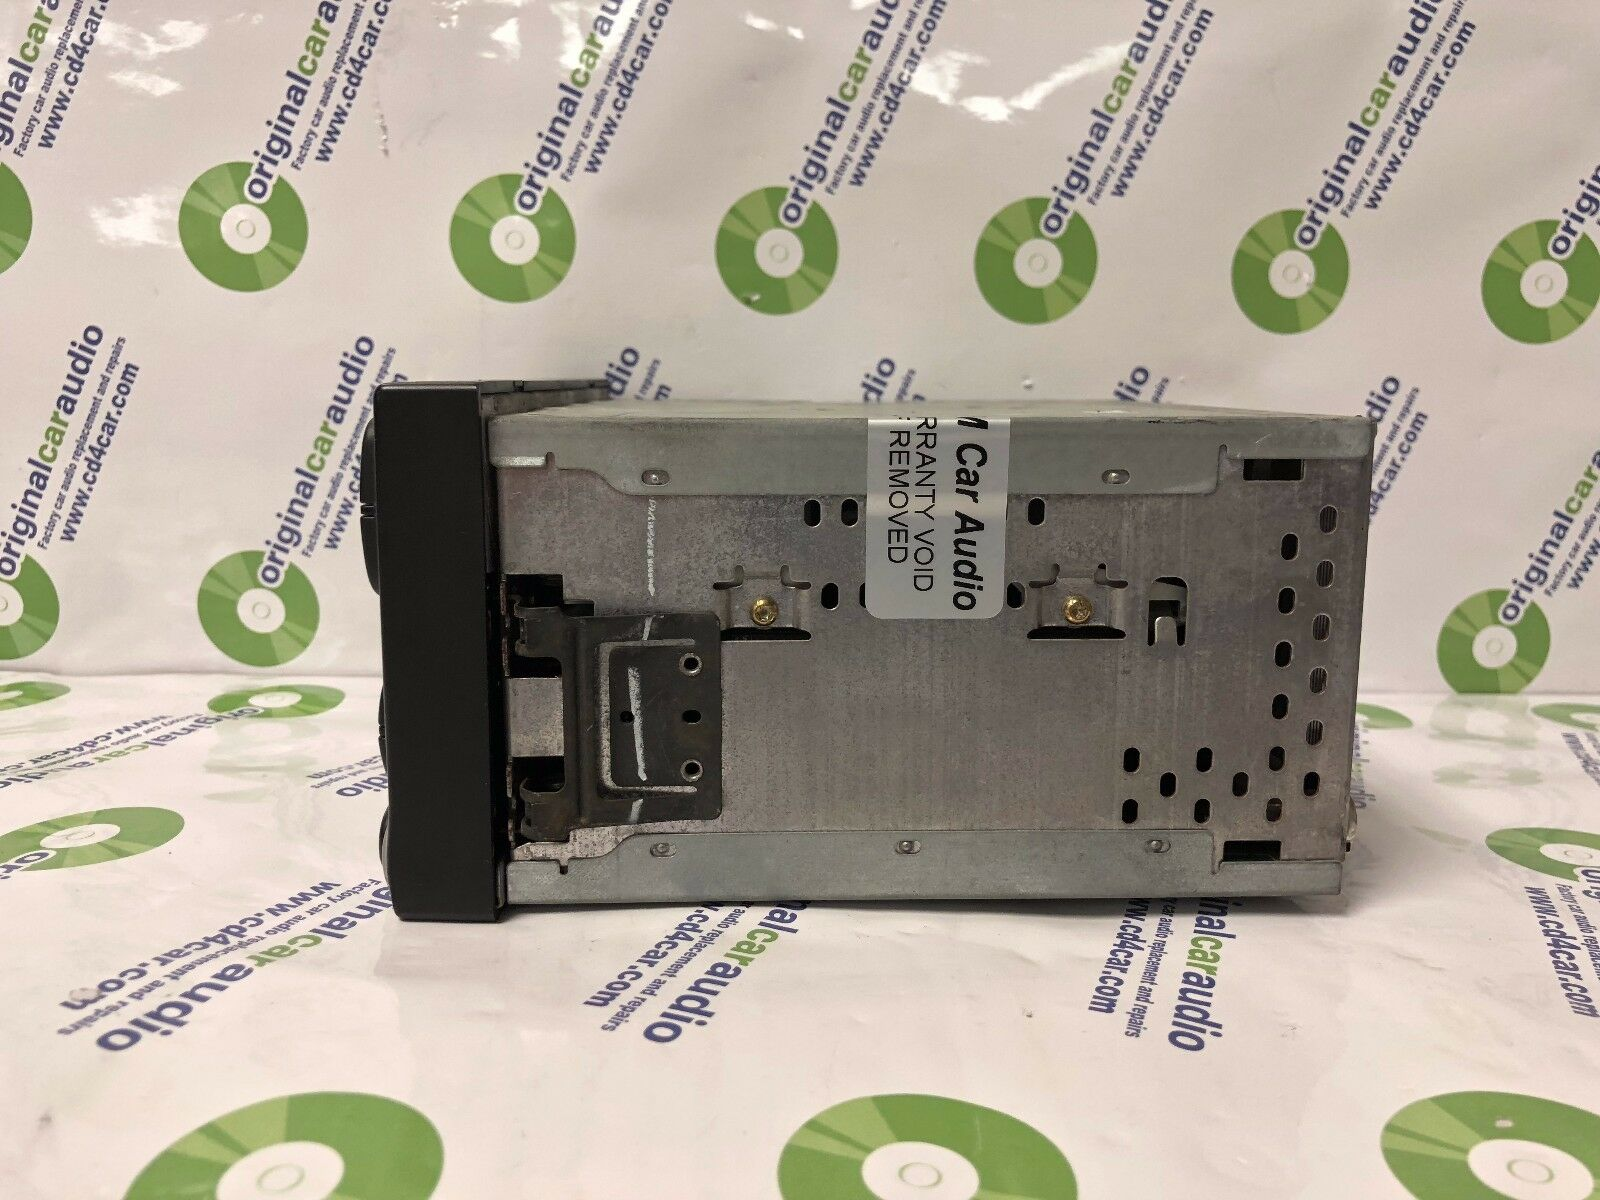 98 99 2000 01 02 03 Ford F150 F250 F350 Series Truck Ranger Radio Cd Yu3f 18c868 Aa Wiring Diagram We Have Removal Tools For Only 950 Can Include These If You Add Under The Insurance Section In Your Ebay Pay Pal Payment